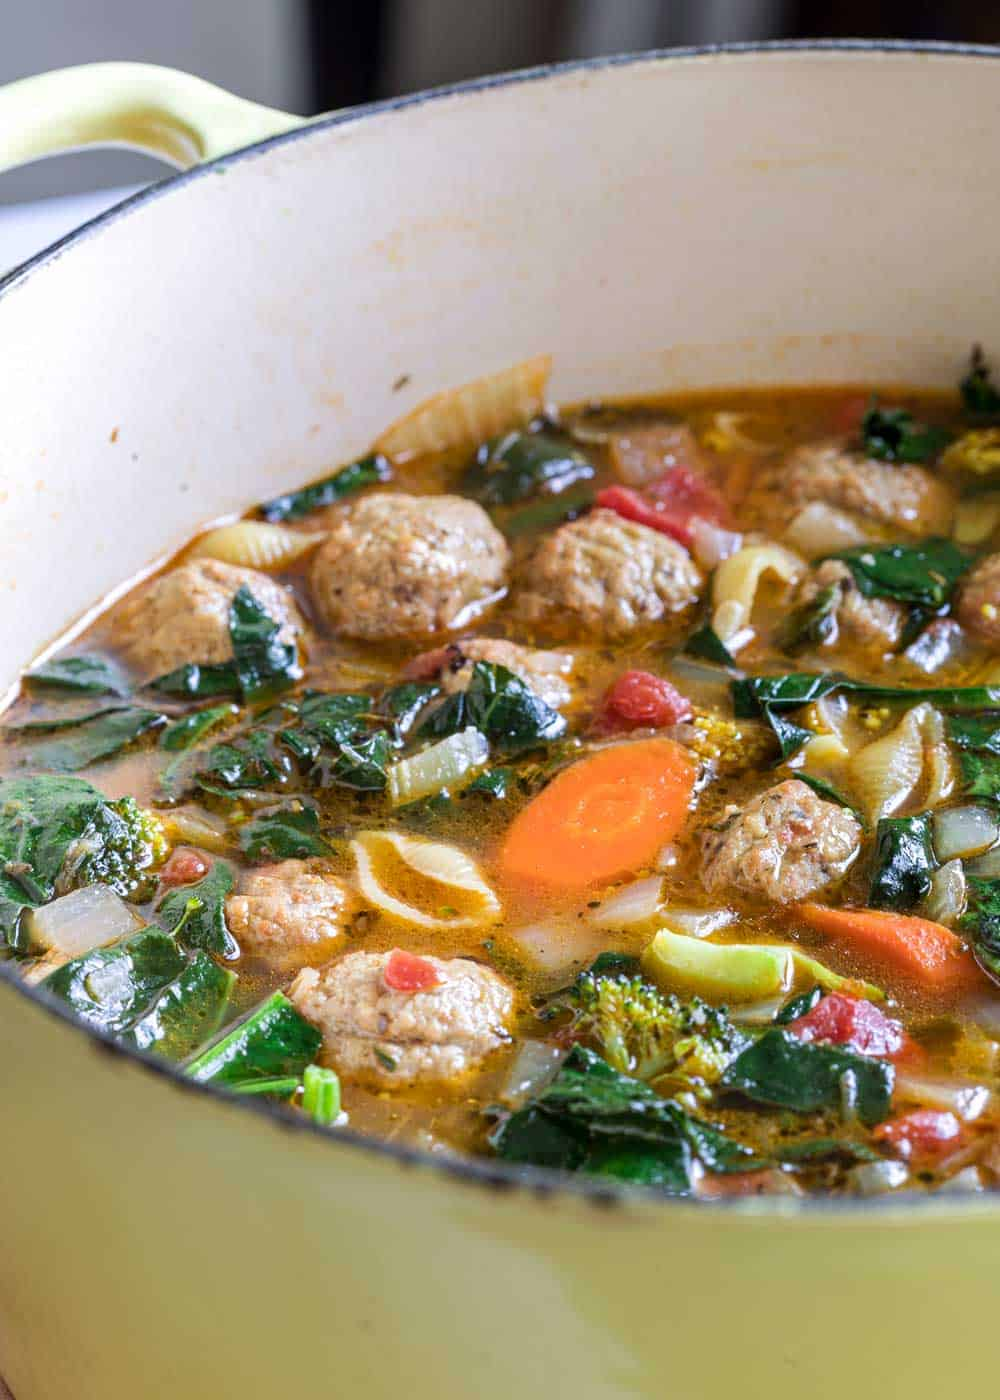 A pot of Meatball and vegetable Soup